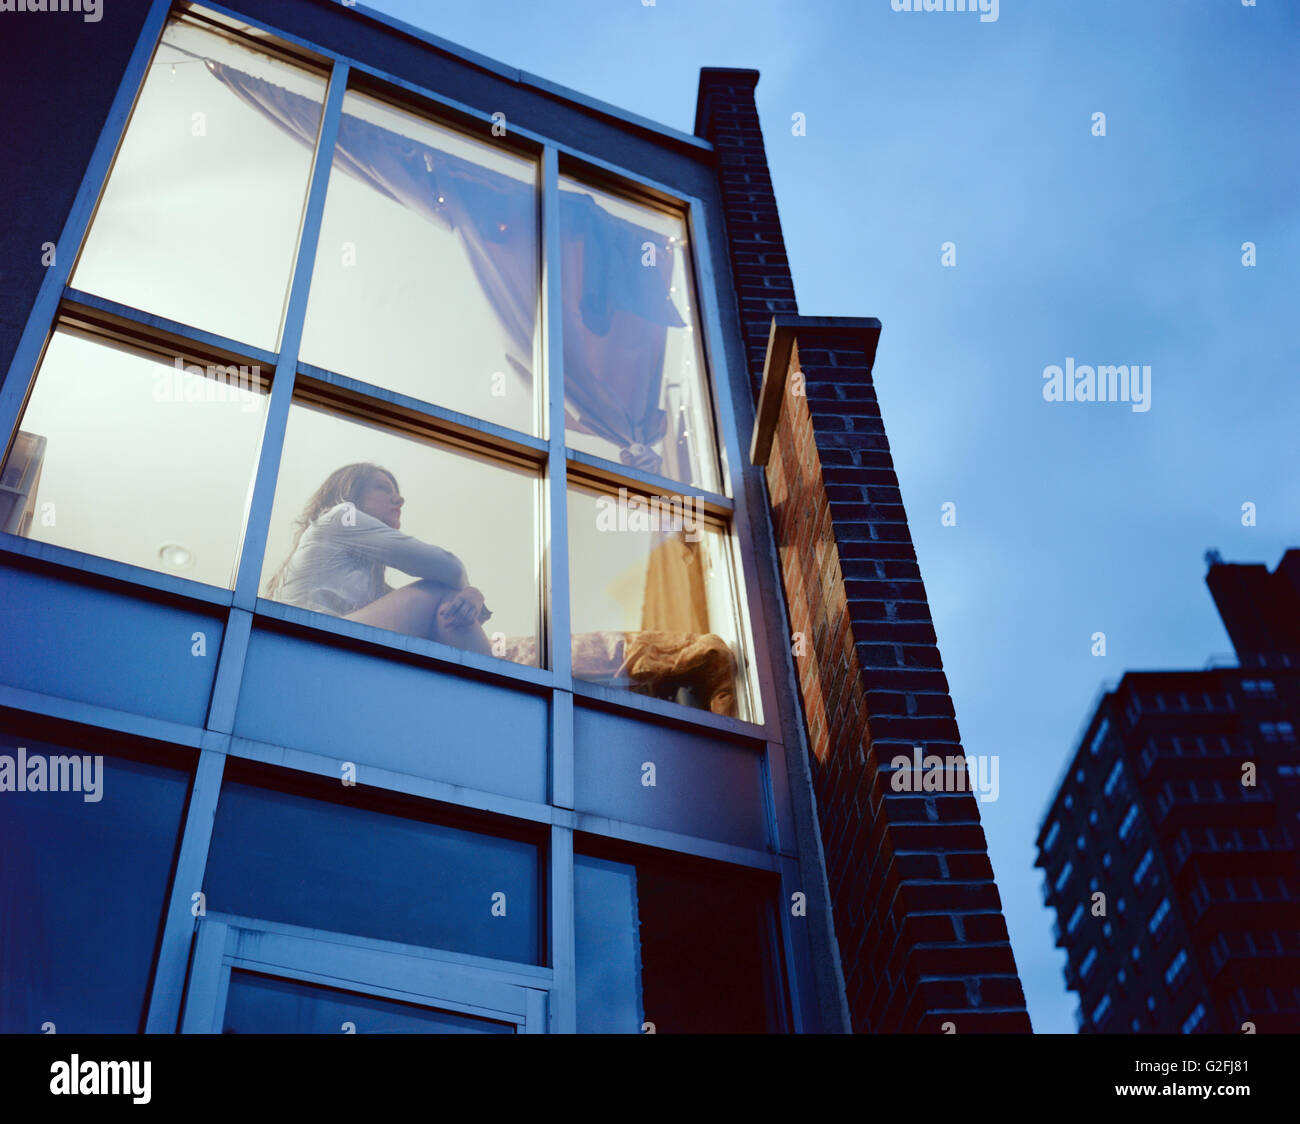 View from Outside of Young Adult Woman Gazing out Window at Night, Low Angle View - Stock Image